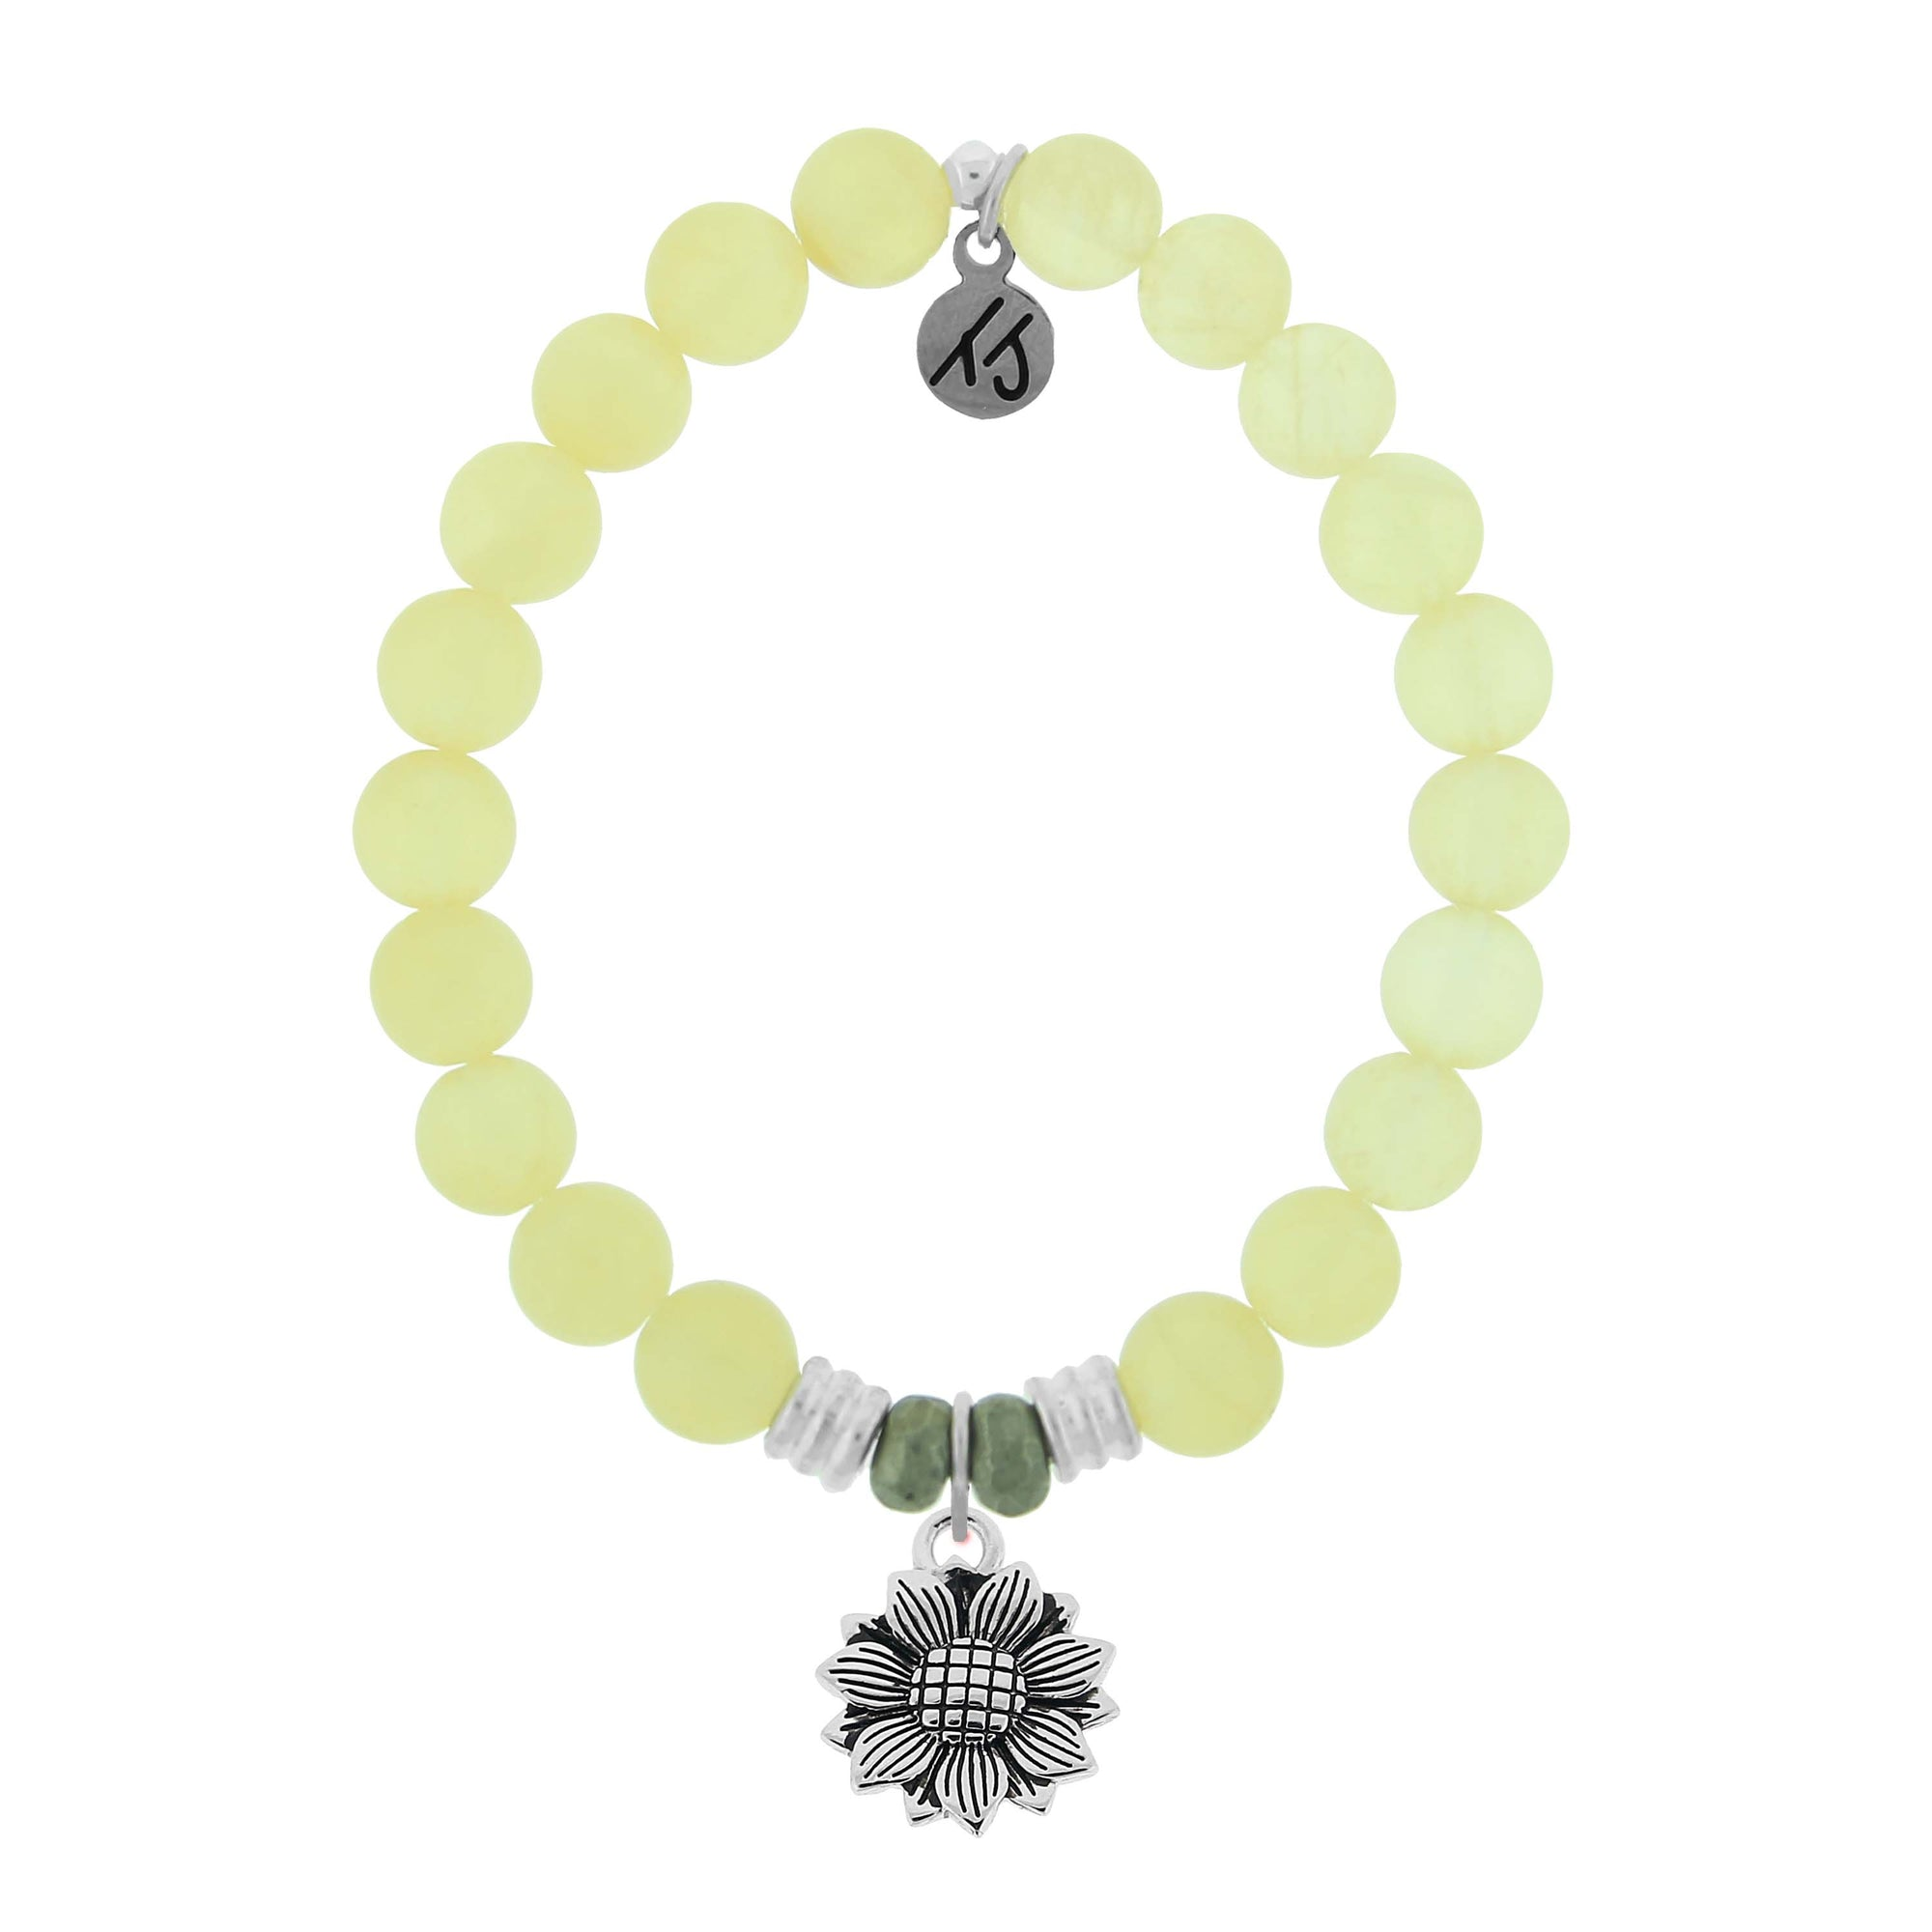 Yellow Calcite is the stone of Confidence and positivity.  Sunflower Charm - Facing the sun the Sunflower becomes a unique and stunning flower. Each growing beautifully in all different shapes and sizes. Wear your Sunflower beaded sterling silver charm bracelet as an everyday reminder to shine bright knowing how unique and lovely you are.